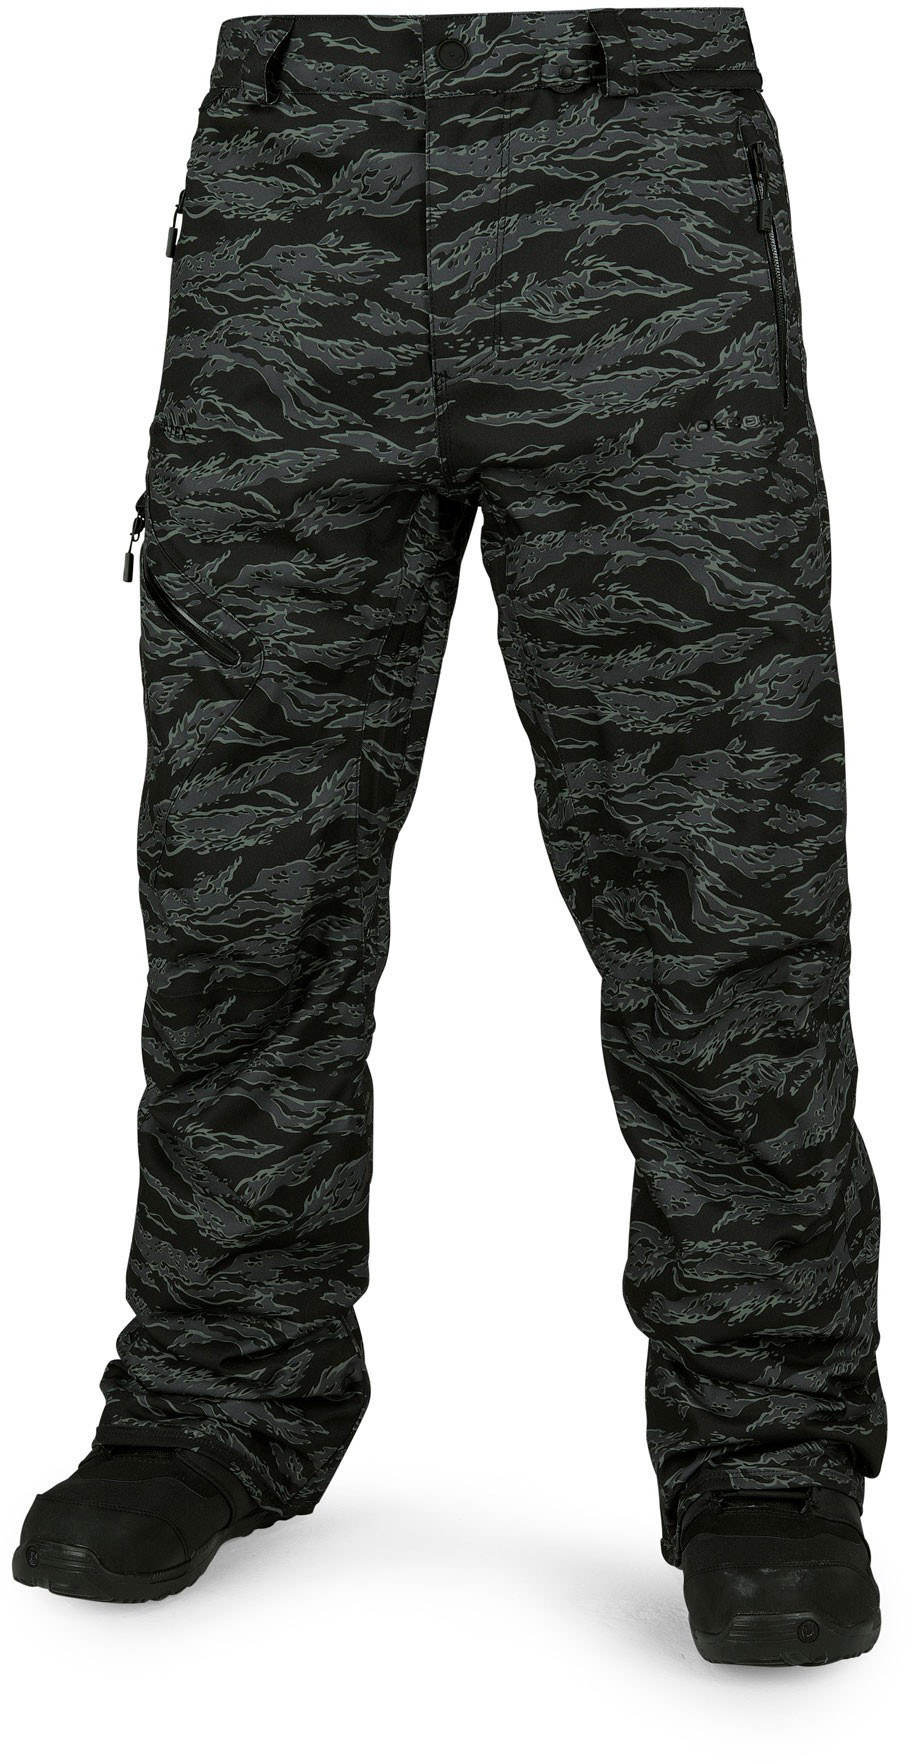 image volcom-l-gore-tex-camouflage-jpg